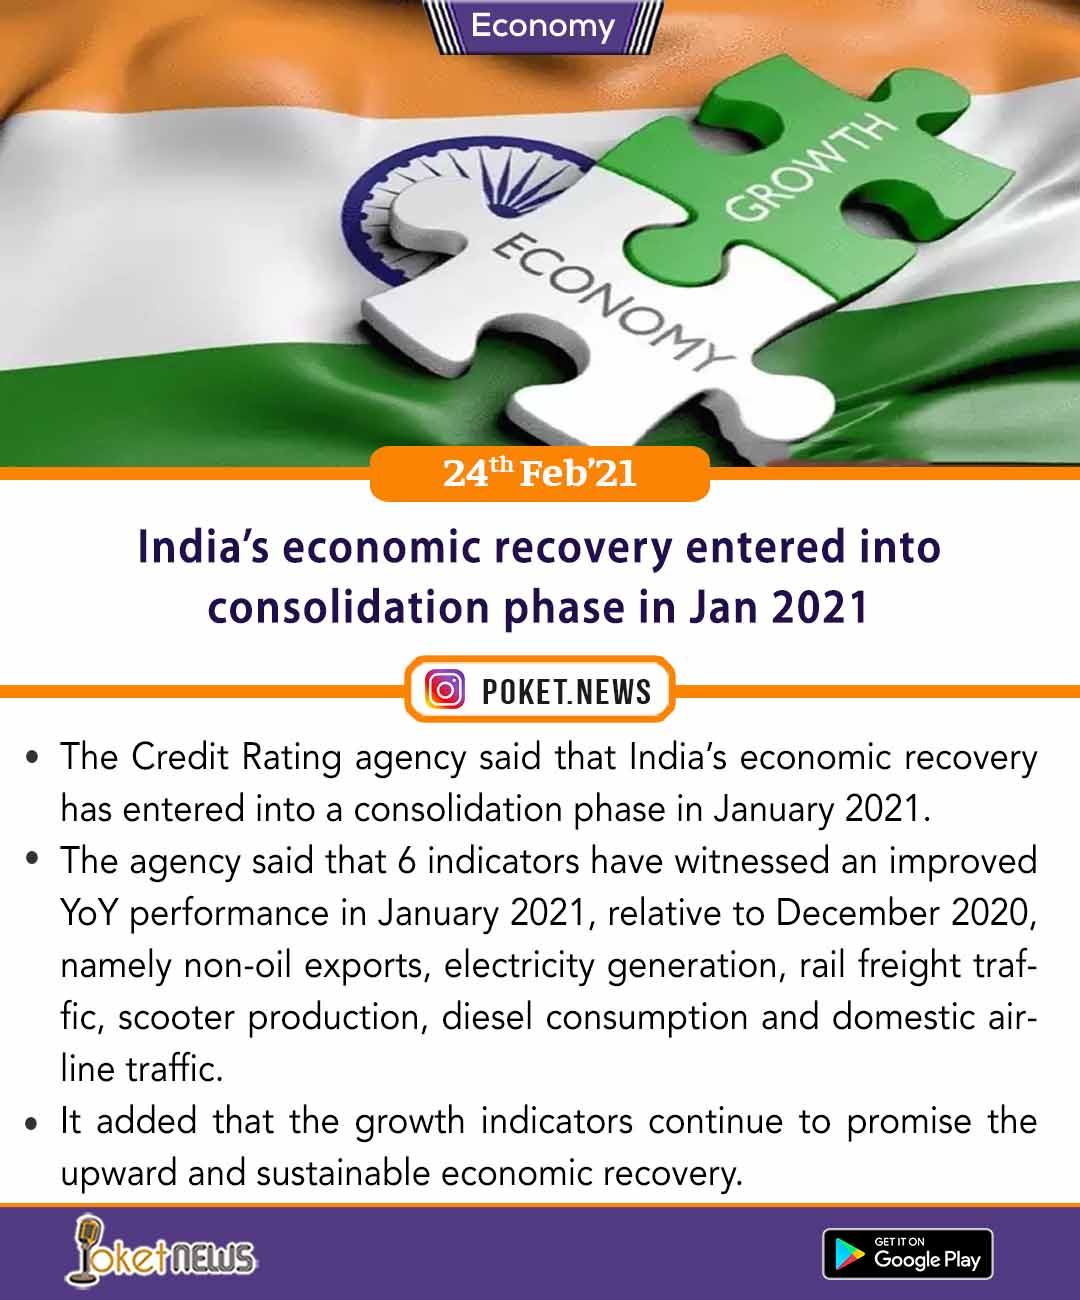 India's economic recovery entered into consolidation phase in Jan 2021